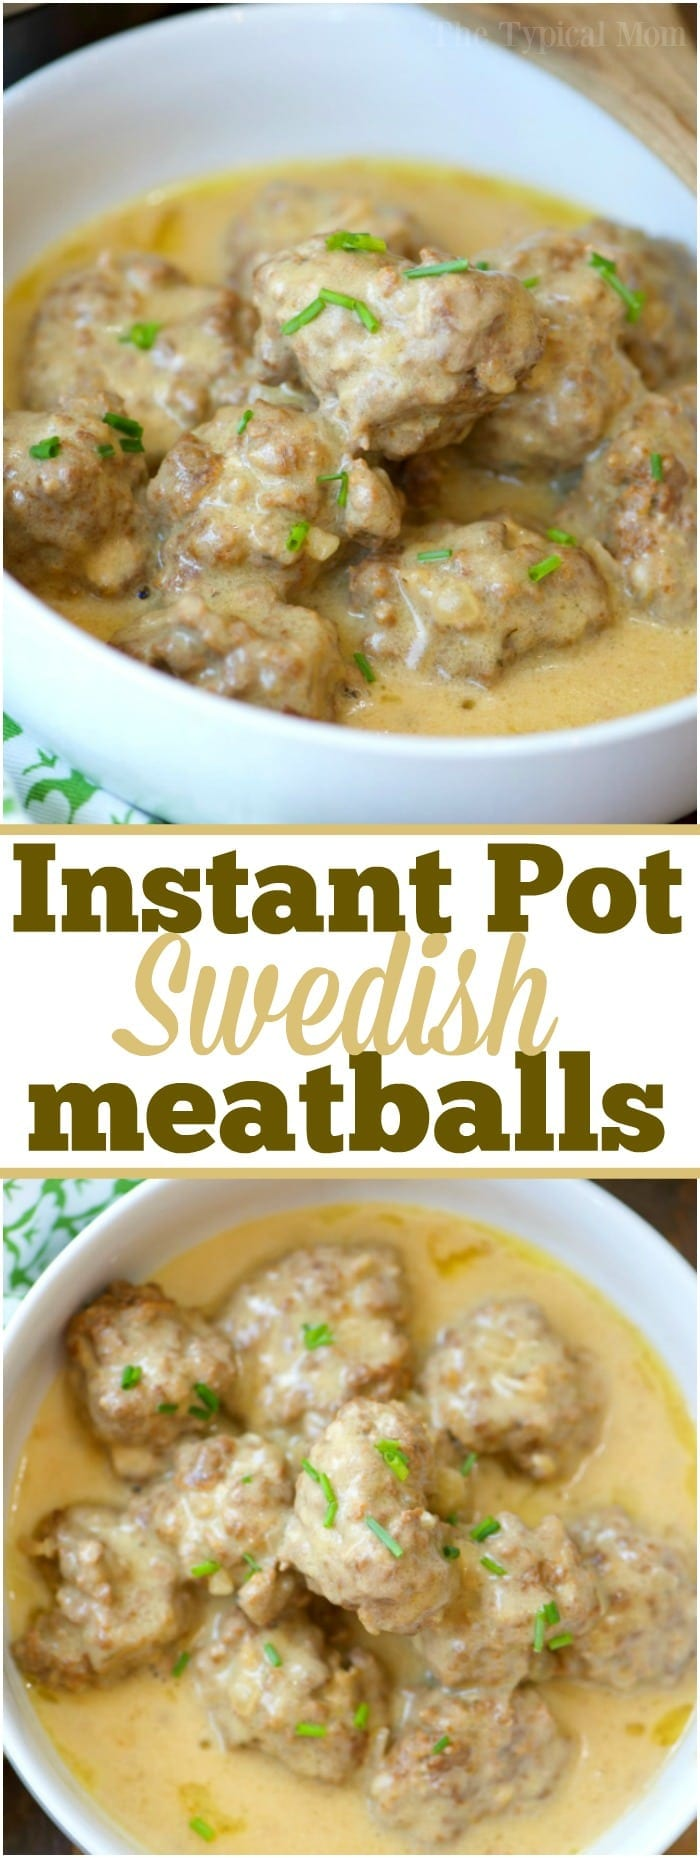 These easy homemade Instant Pot Swedish meatballs are heavenly! Total comfort food at it's finest and takes less than 20 minutes to make. You've got to try! #instantpot #swedishmeatballs #meatballs #pressurecooker